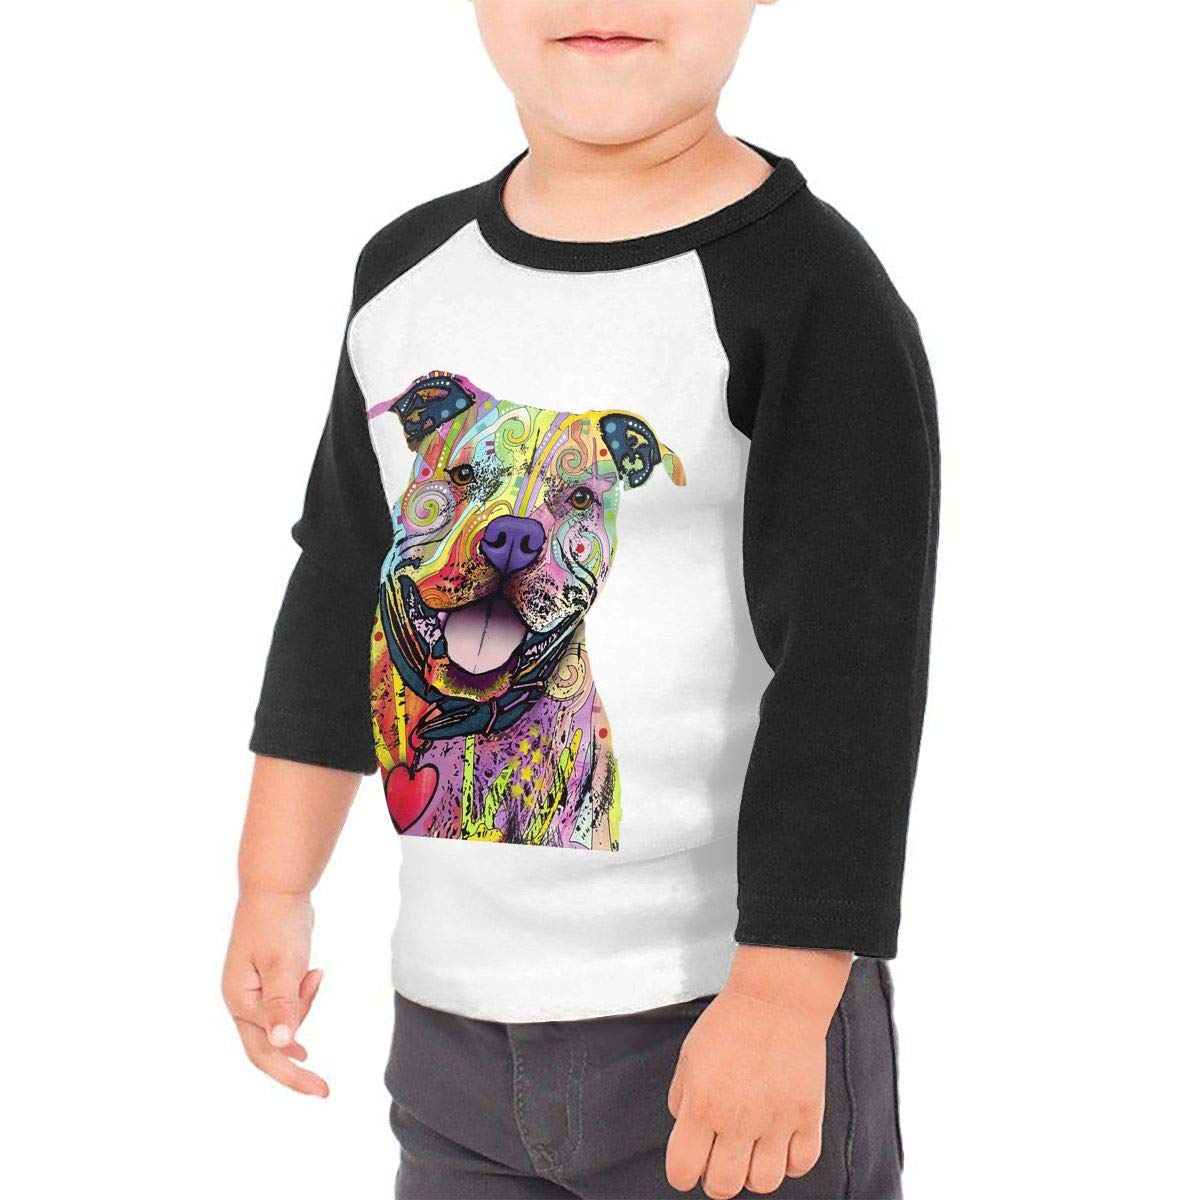 Manlee Pit Bull Painting Unisex 100/% Cotton Childrens 3//4 Sleeves T-Shirt Top Tees 2T~5//6T